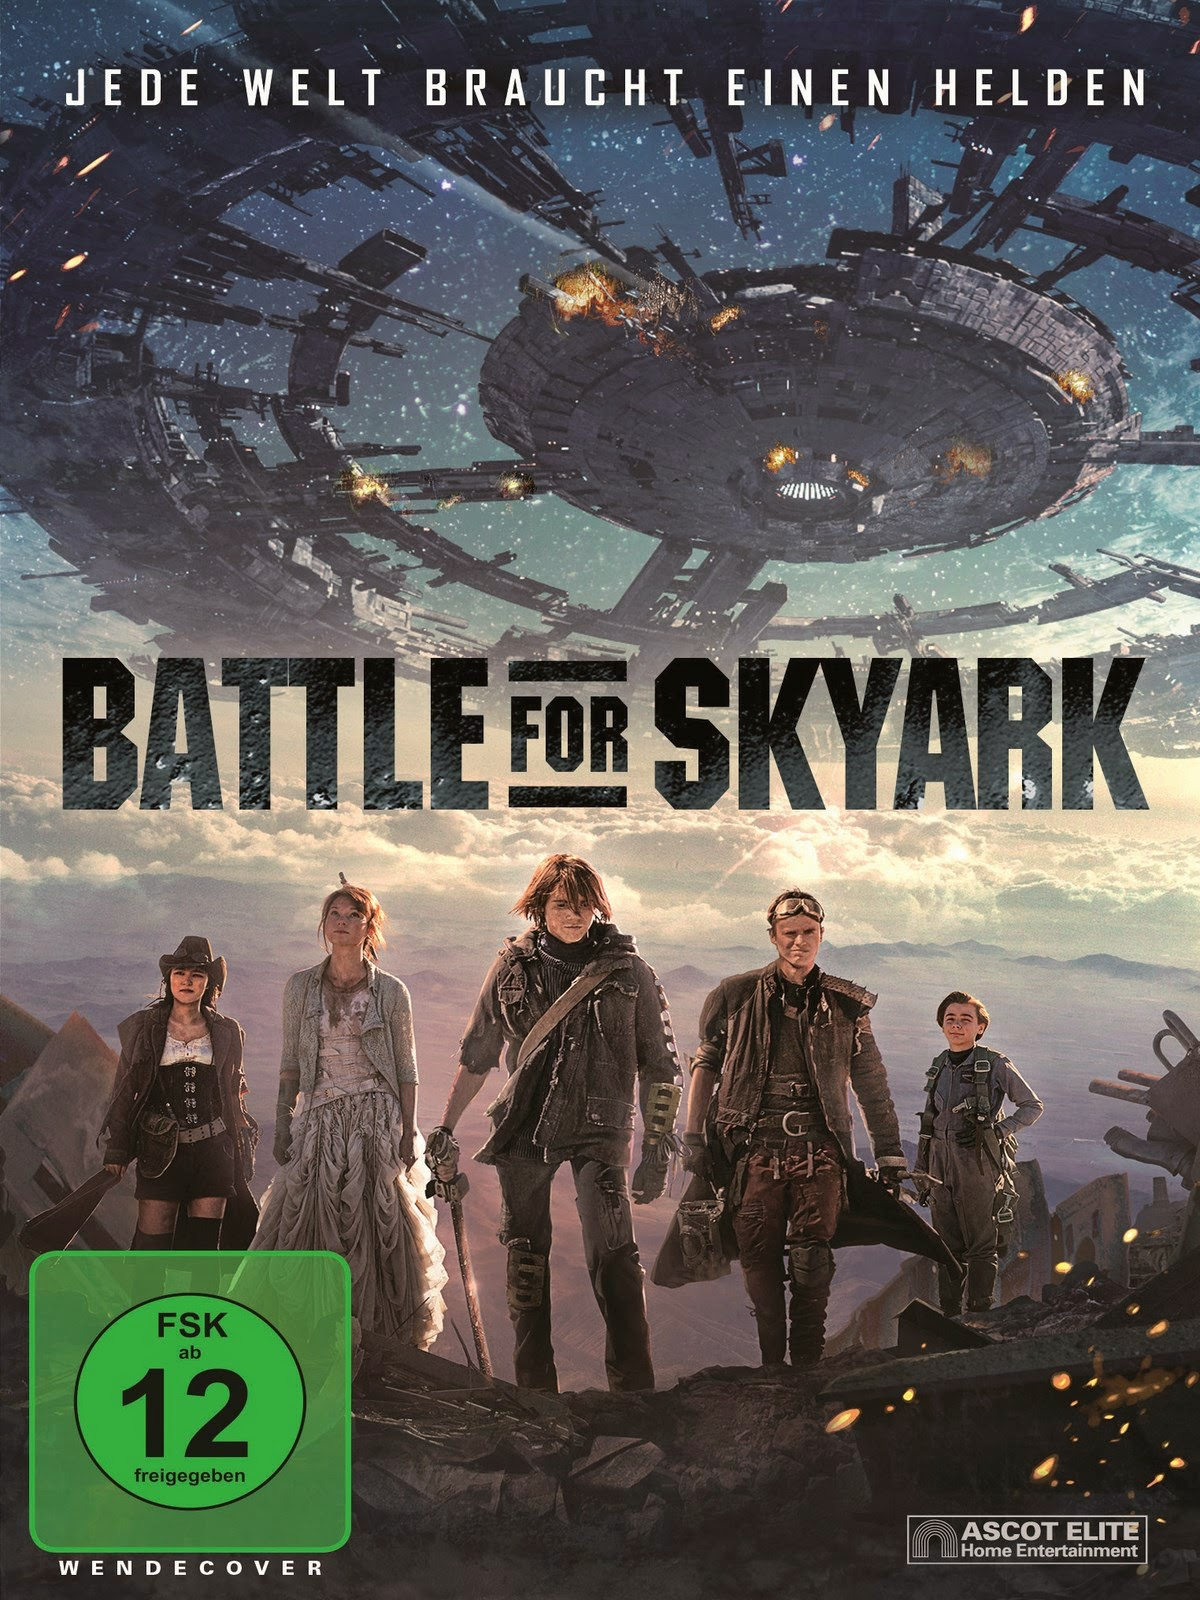 Battle for Skyark 2015 – Watch Movie and TV Show PubFilm HD Free